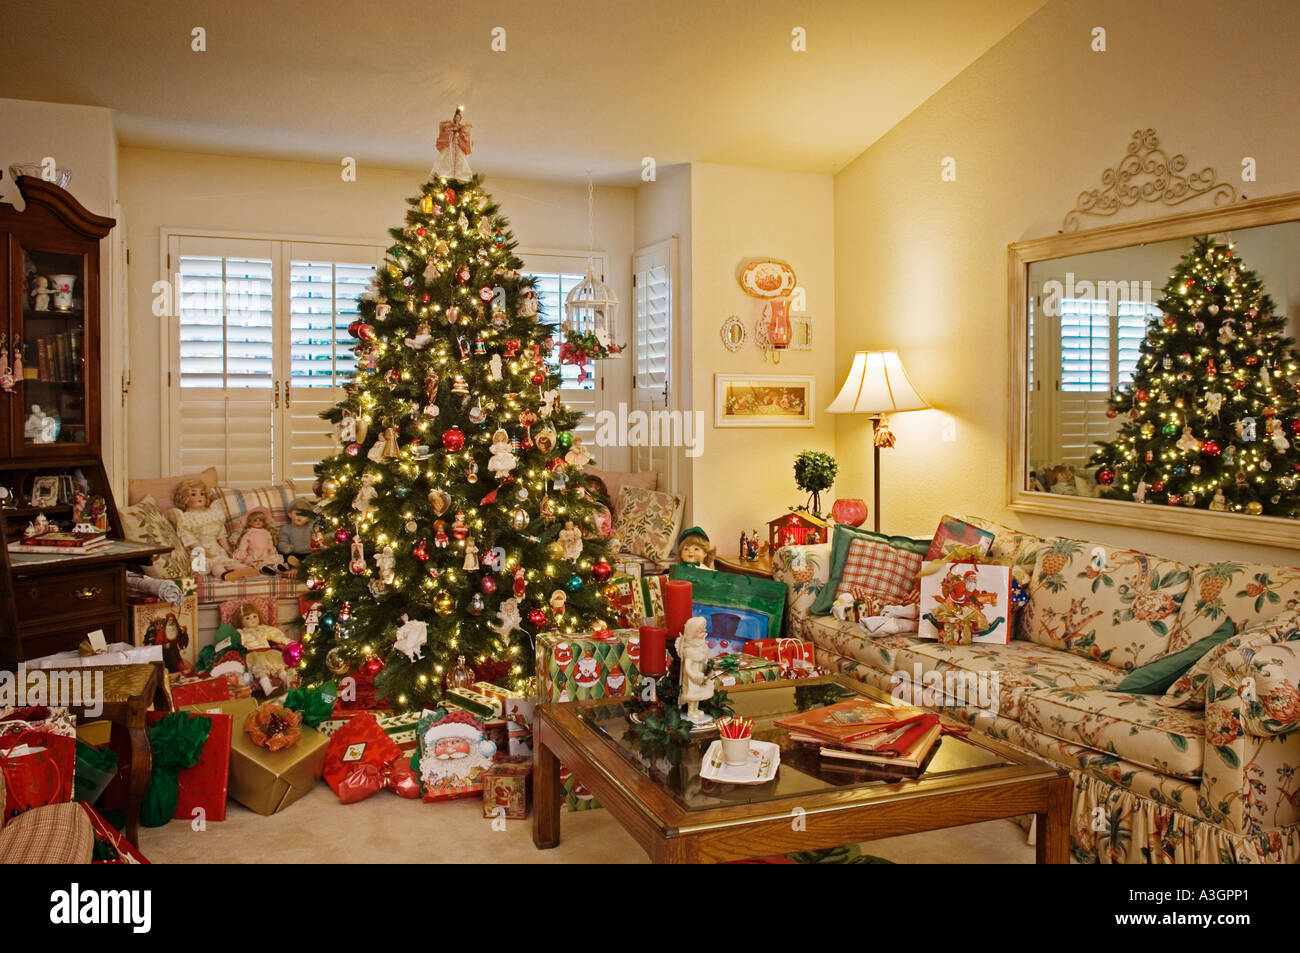 Christmas tree decorations and gifts in living room of